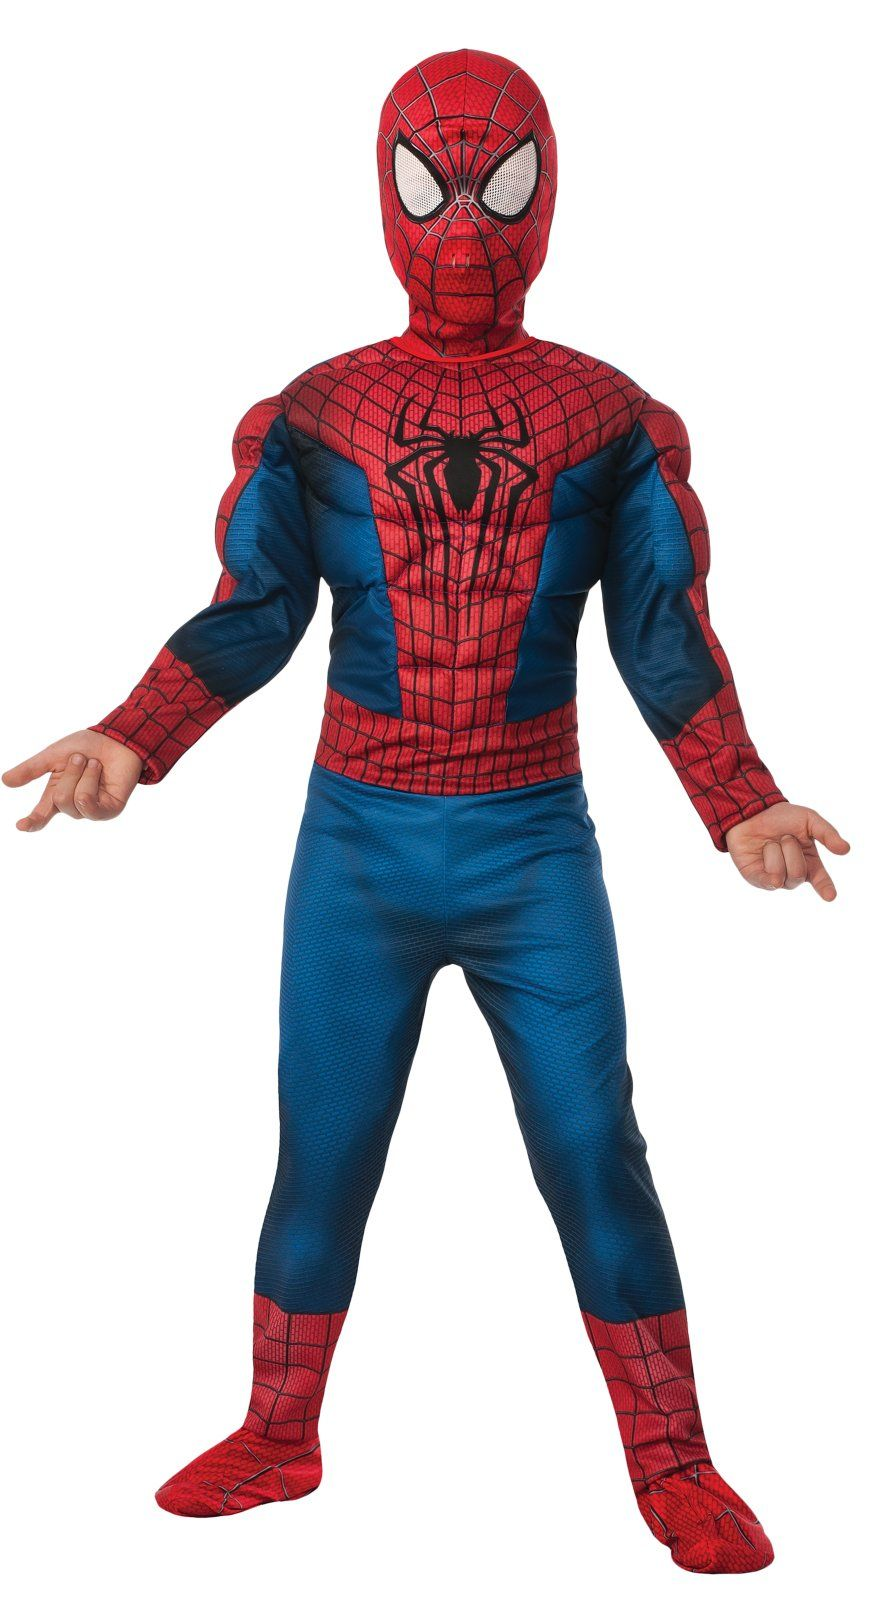 The+Amazing+Spider Man+2+Deluxe+Child+Costume From BuyCostumes.com